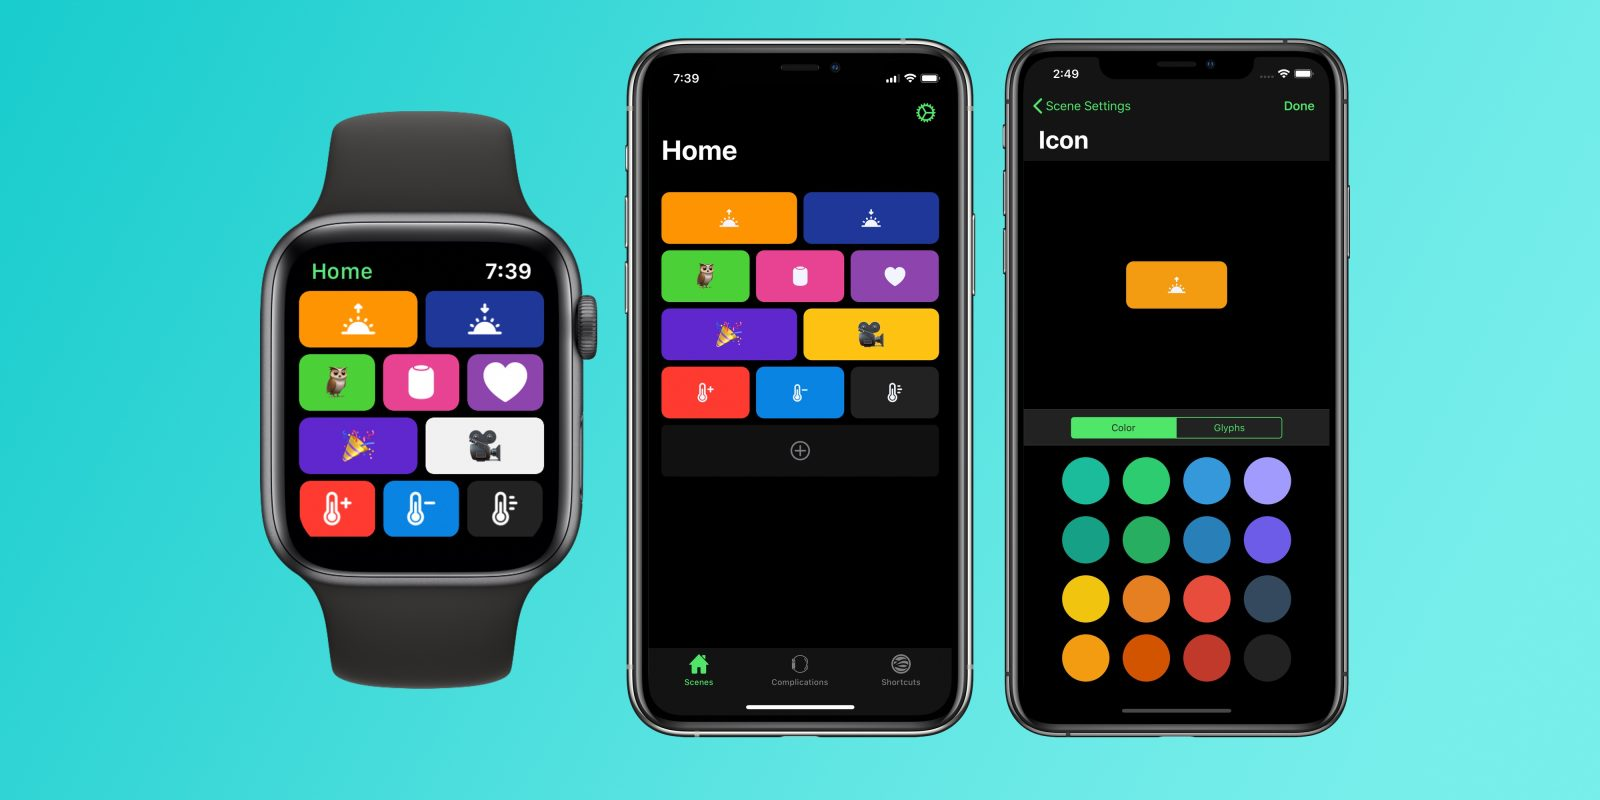 HomeRun Apple Watch app gains tons of new icons for controlling HomeKit with complications